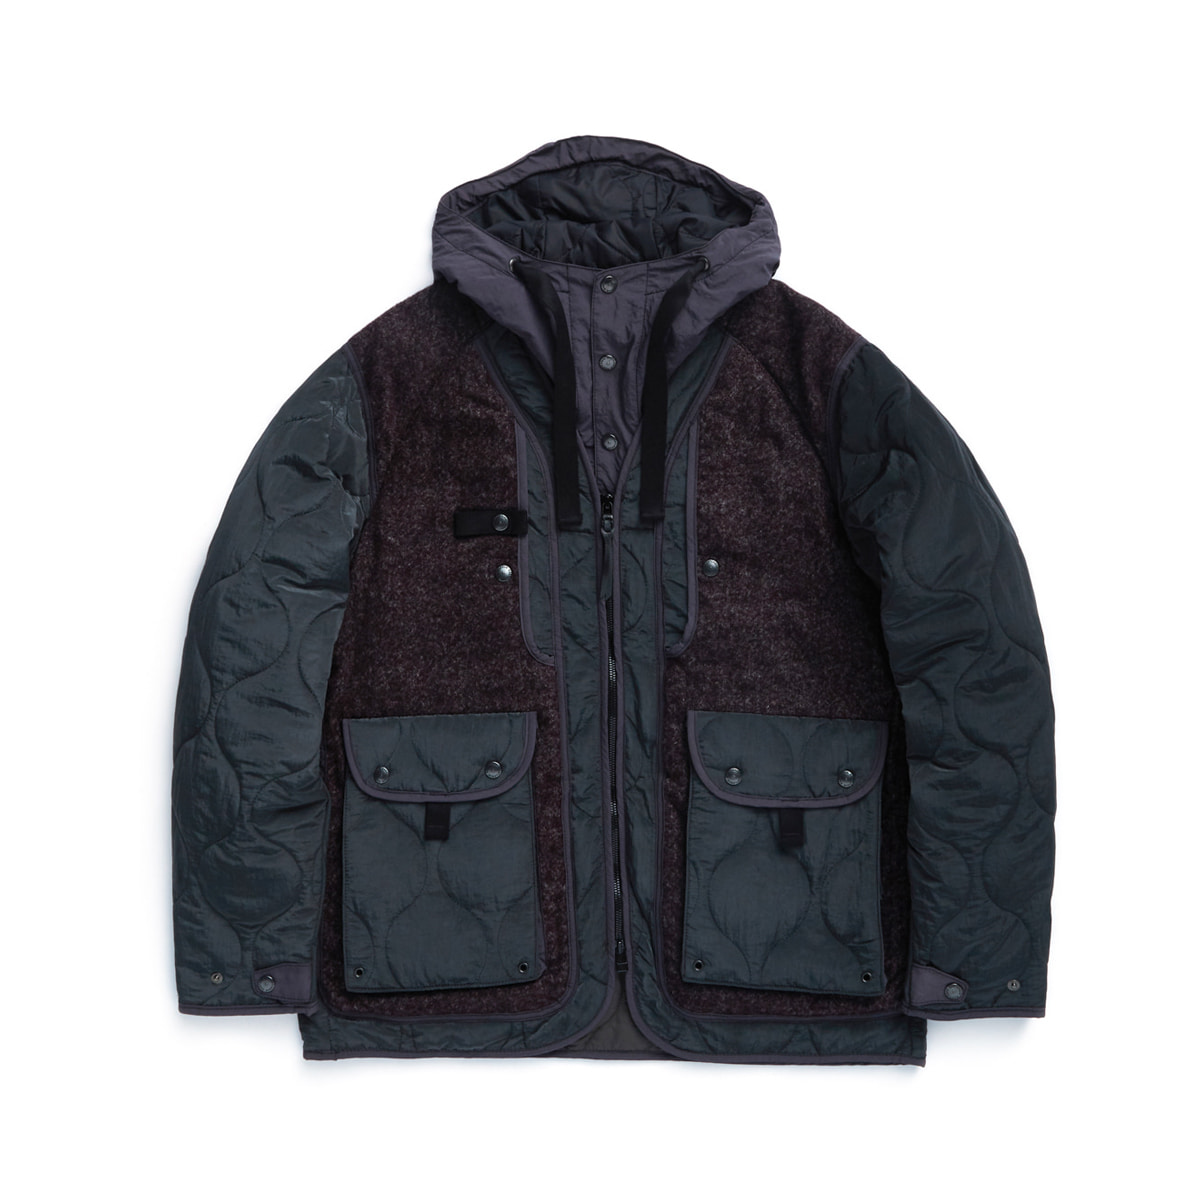 [EASTLOGUE] SHERPA PARKA 'PURPLE TOWEL'